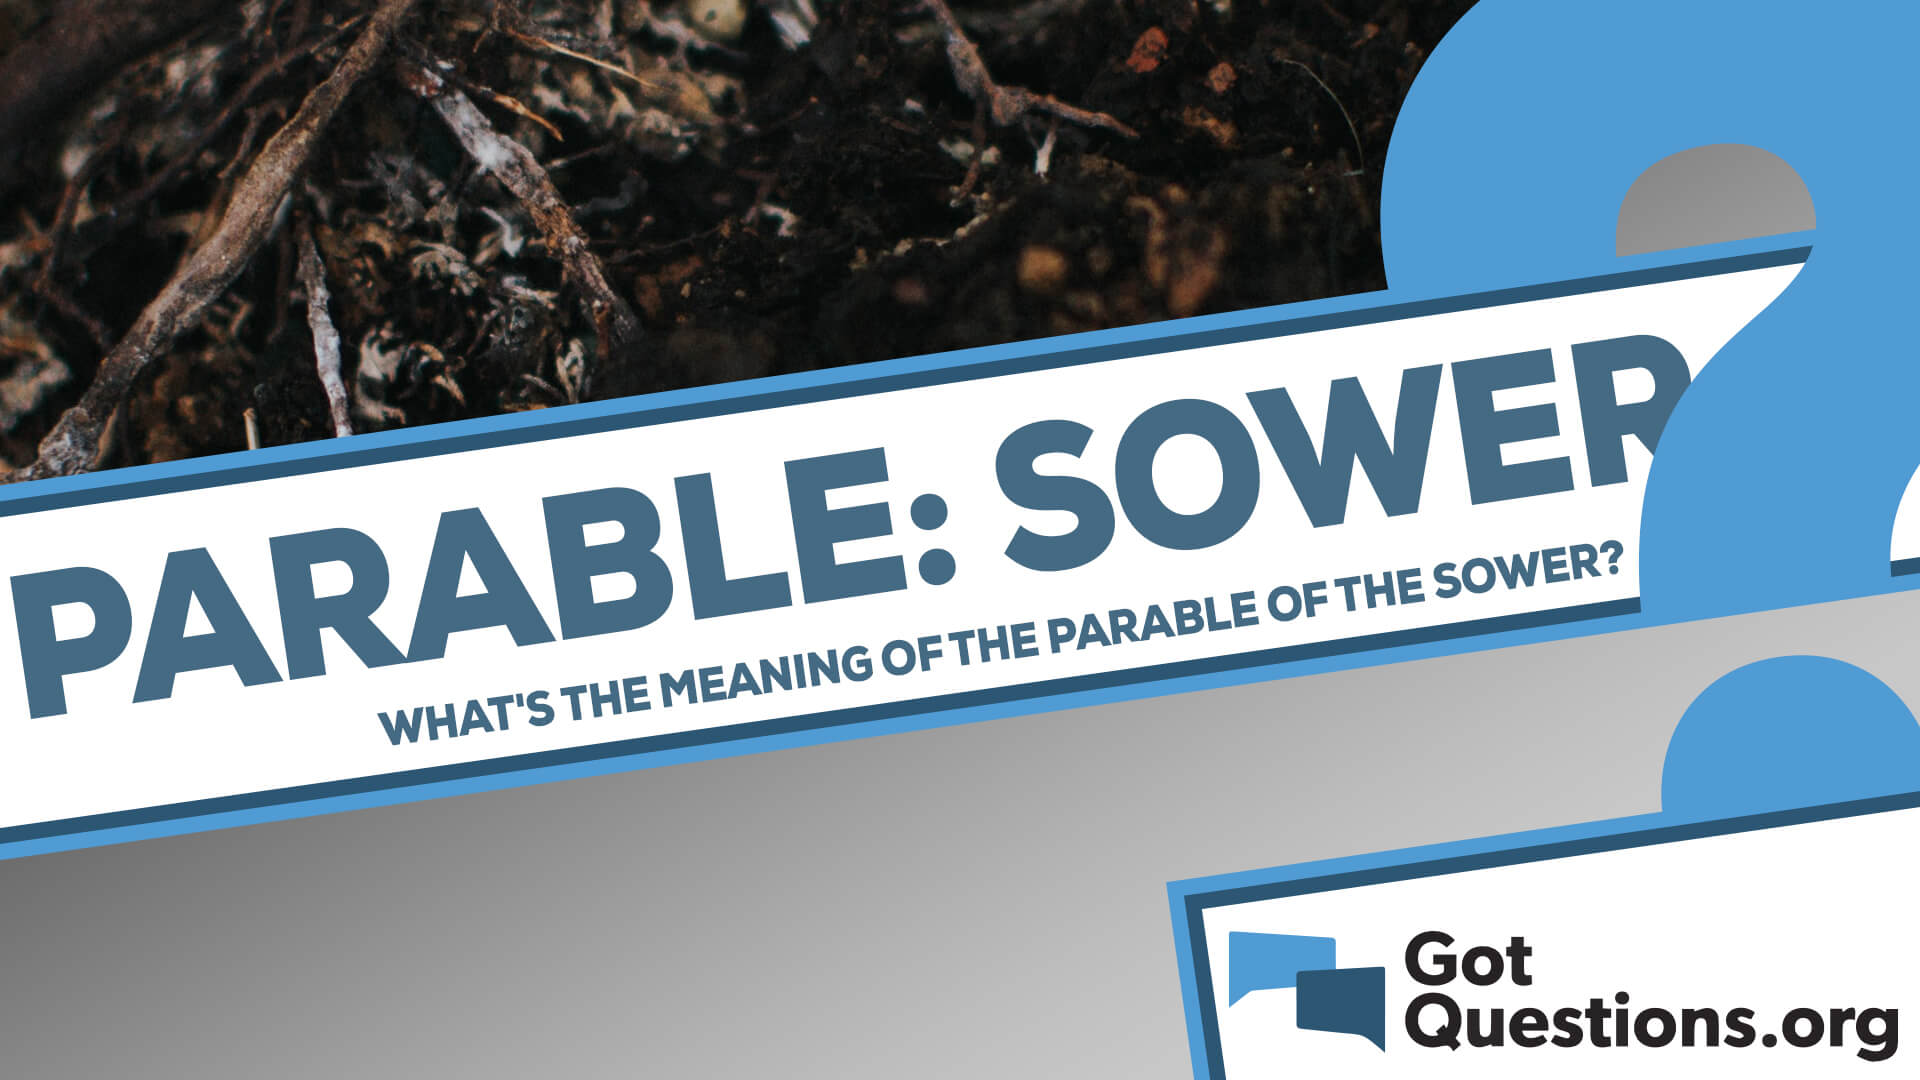 What is the meaning of the Parable of the Sower?